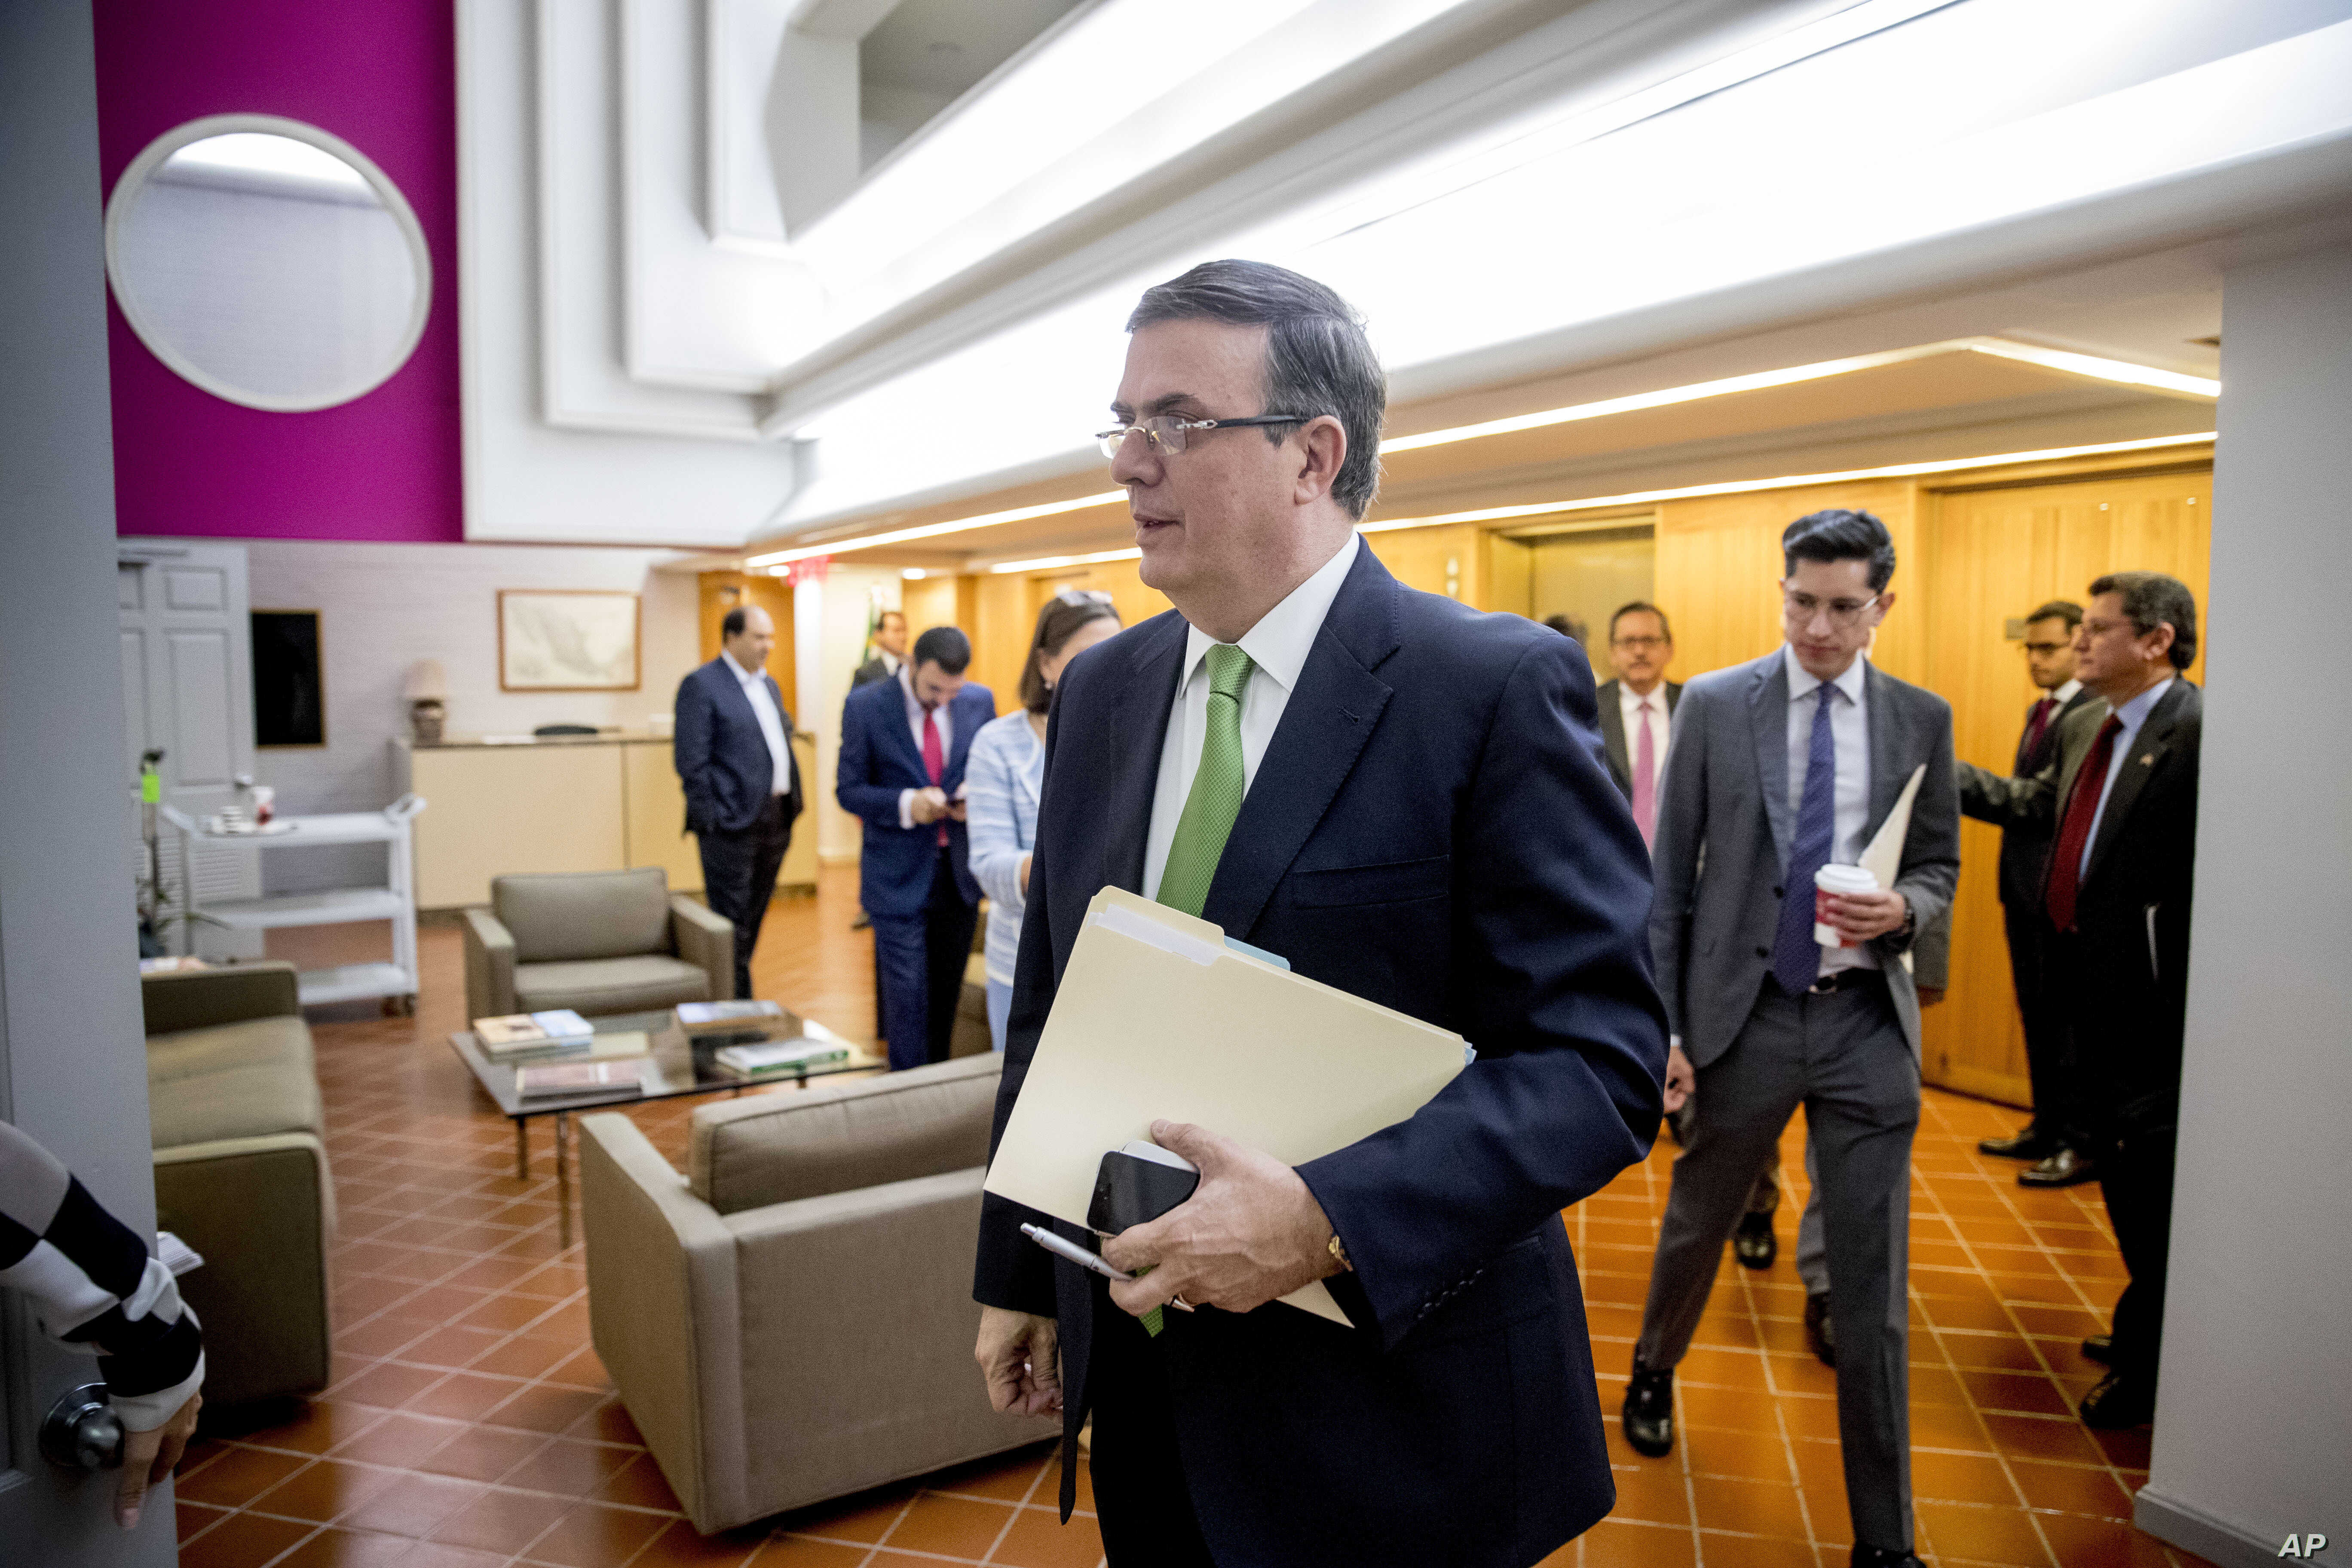 Mexican Foreign Affairs Secretary Marcelo Ebrard arrives for a news conference at the Mexican Embassy in Washington, Tuesday, June 4, 2019, as part of a Mexican delegation in Washington for talks following trade tariff threats from the Trump Administration. (AP Photo/Andrew Harnik)